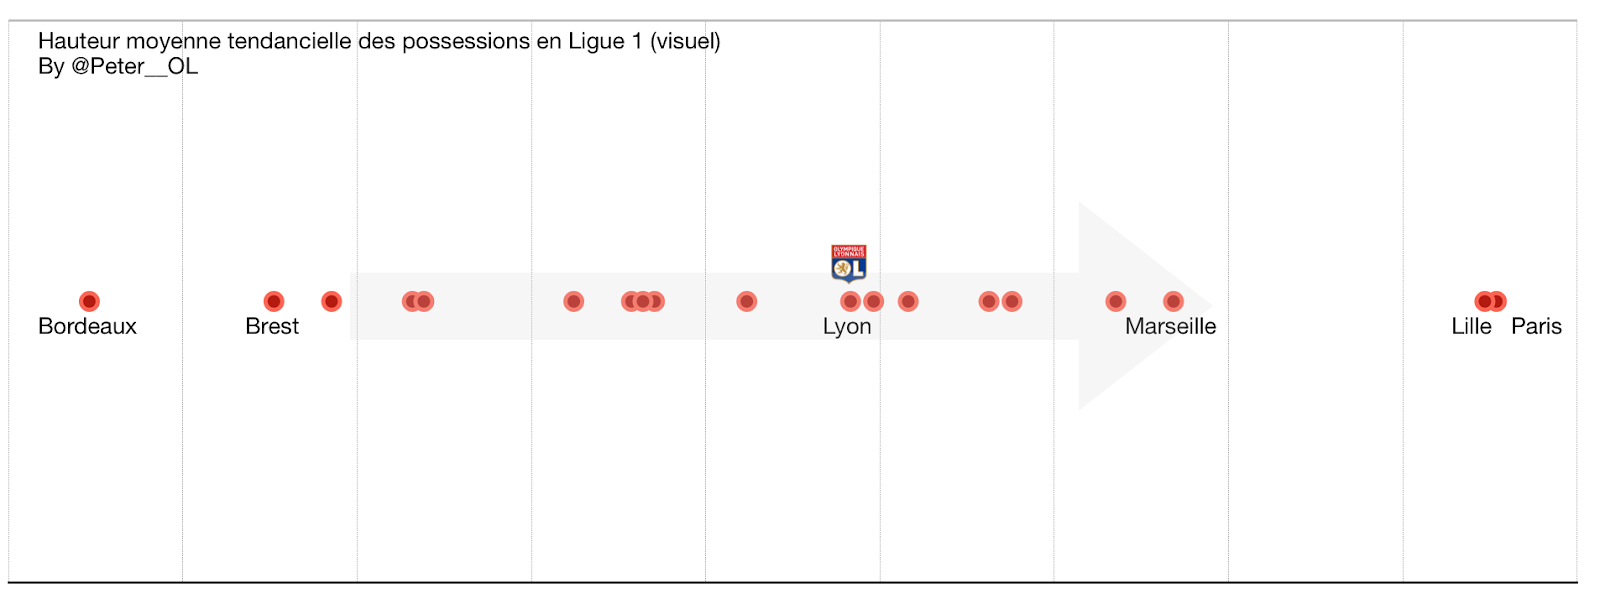 Hauteurs des possession en Ligue 1